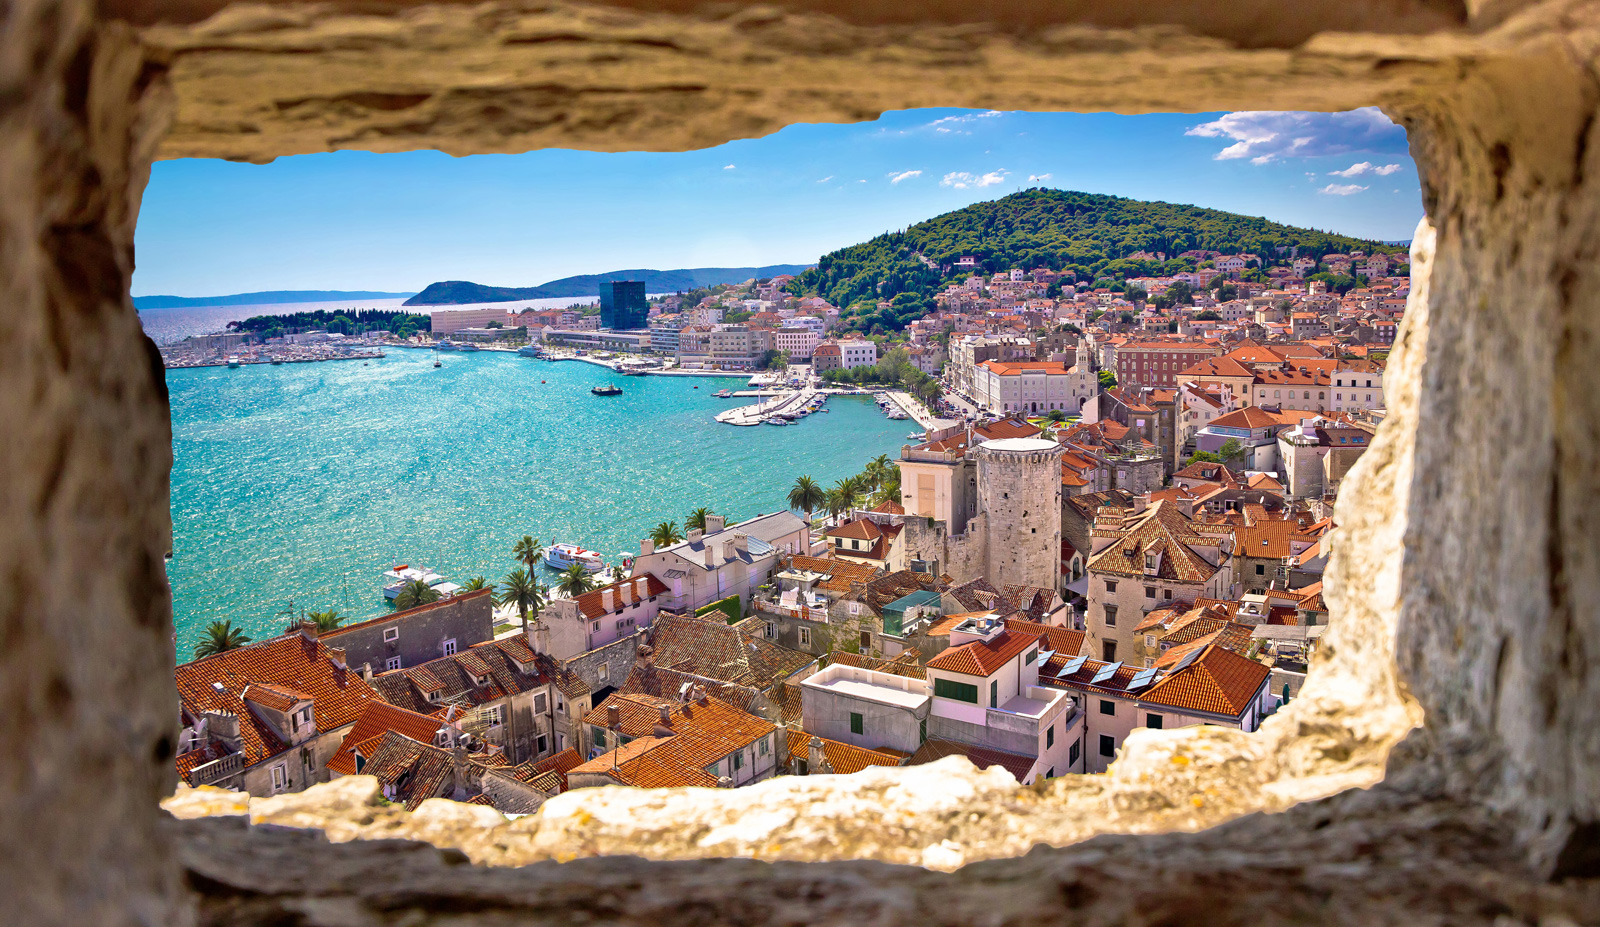 Looking through an old stone window to beautiful port